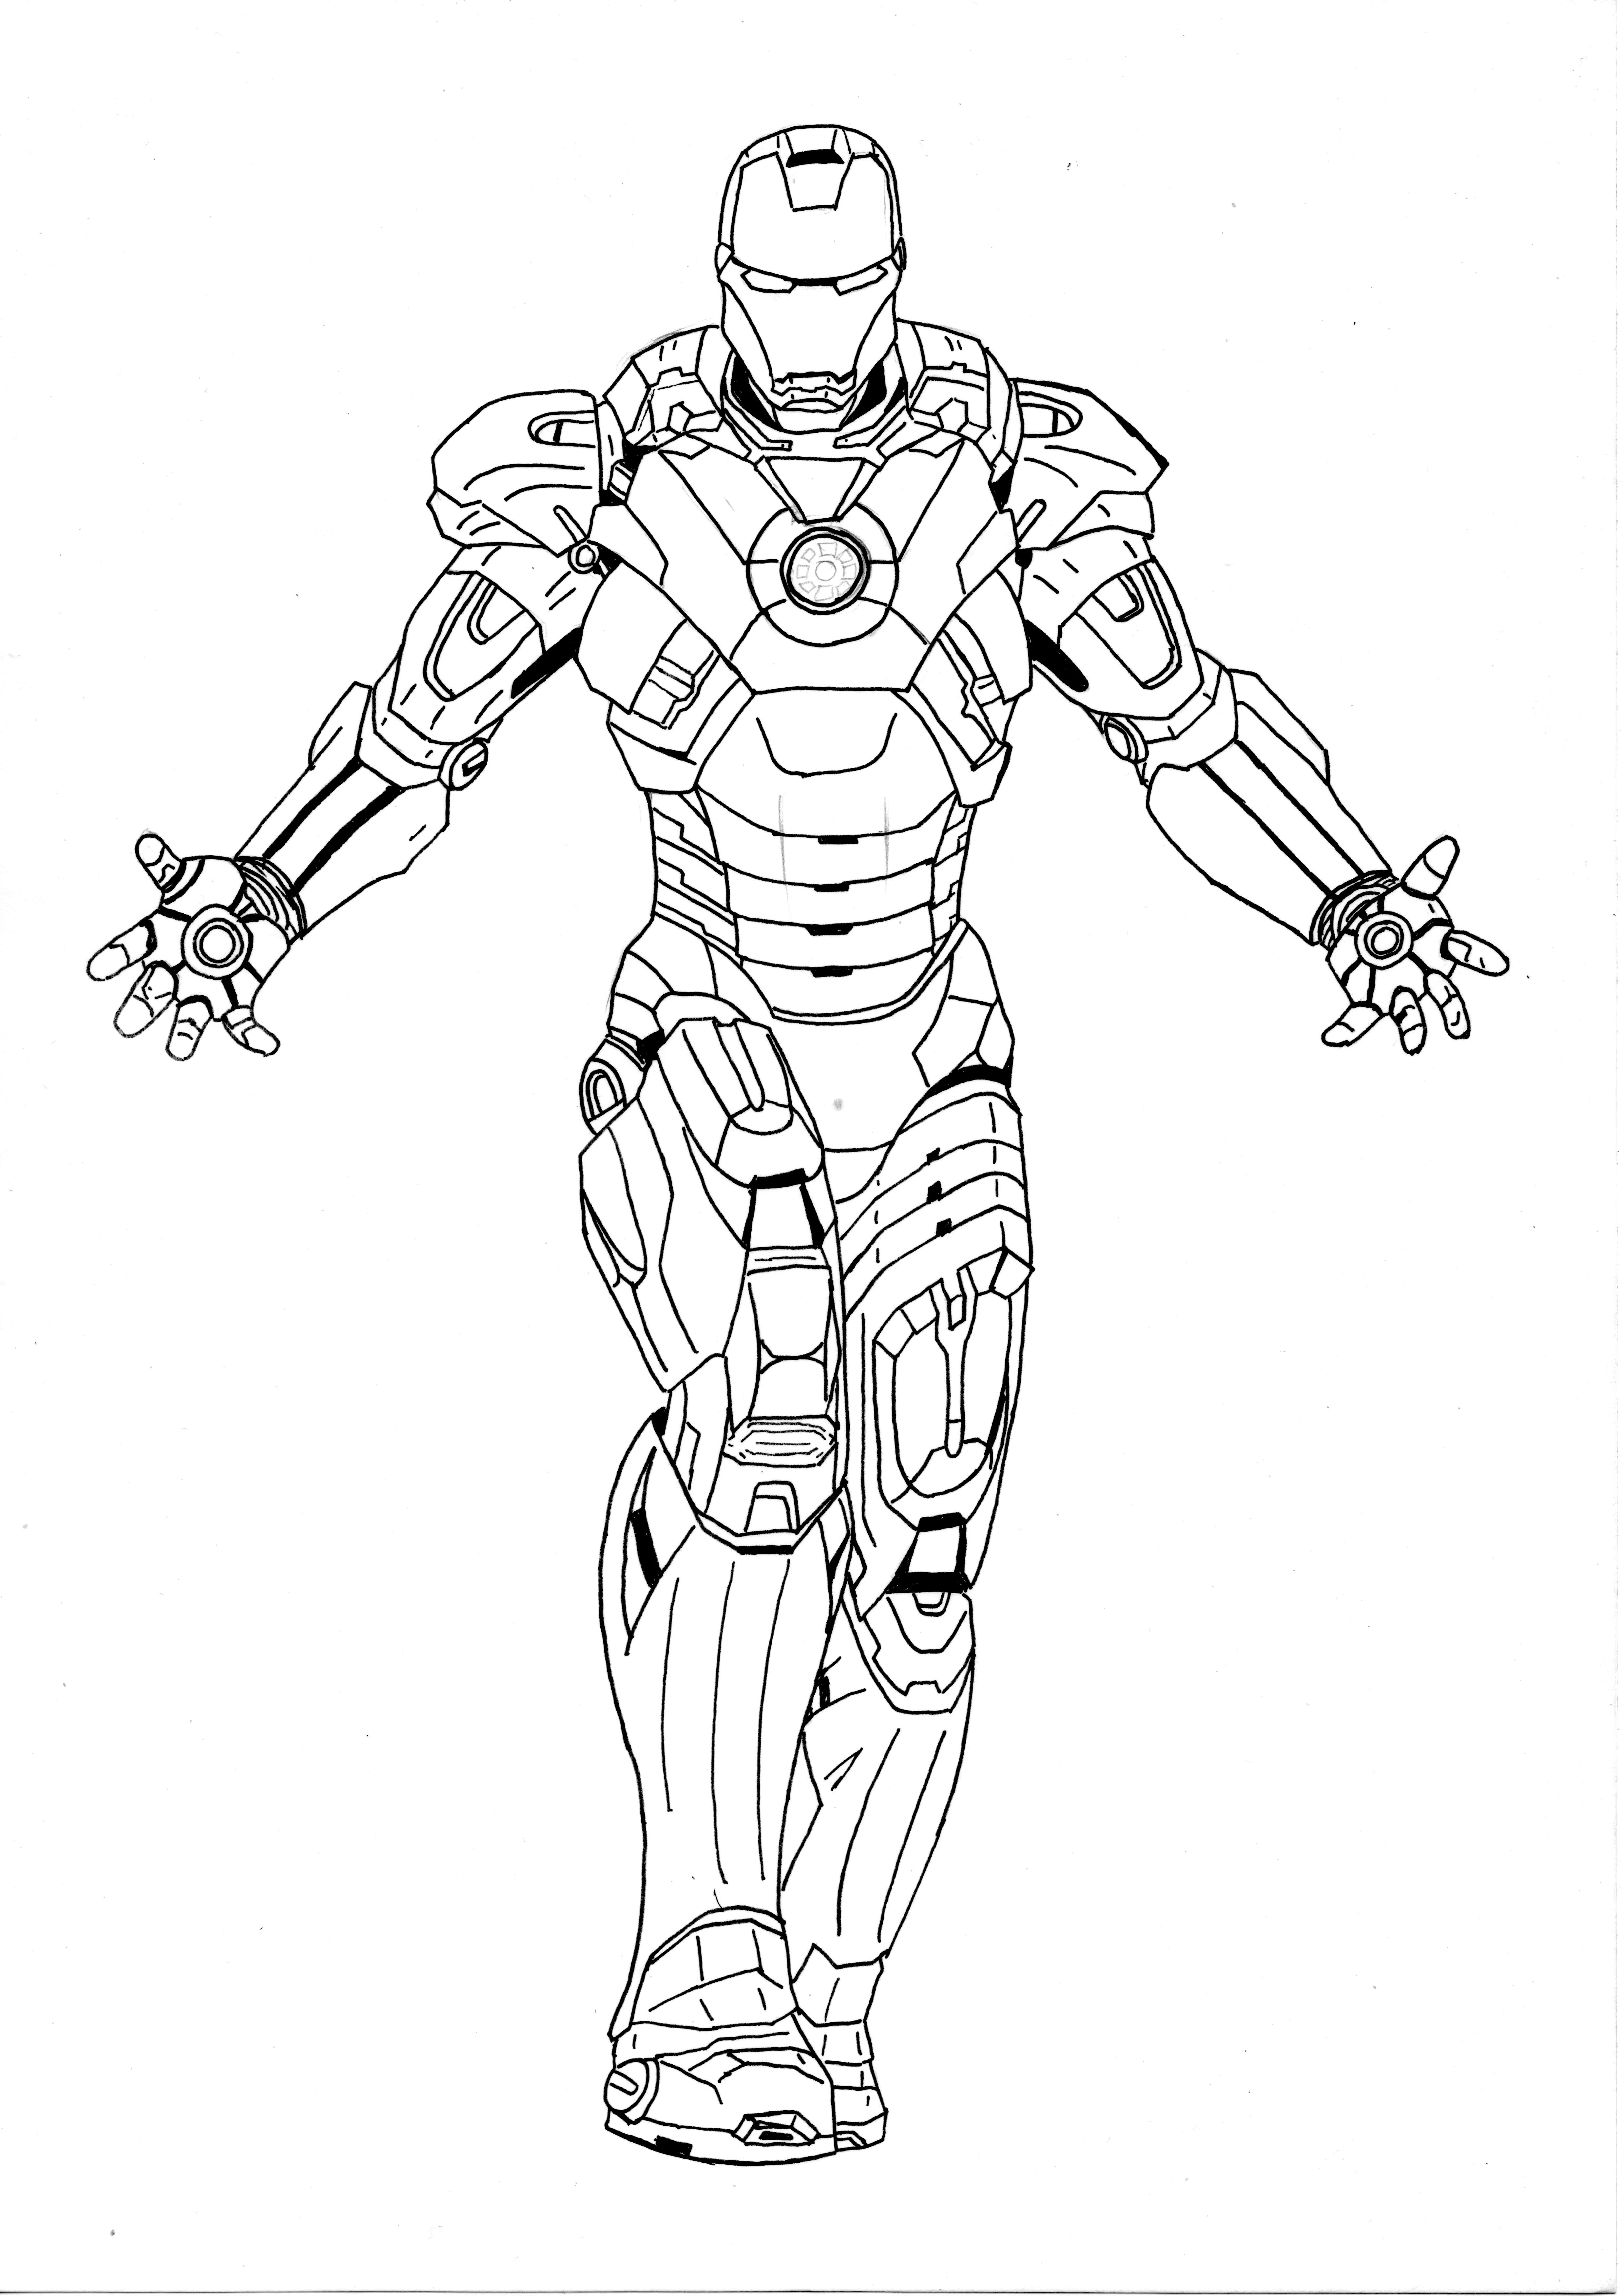 mark 8 coloring pages | Iron Man - MARK VII by l-cardoso on DeviantArt